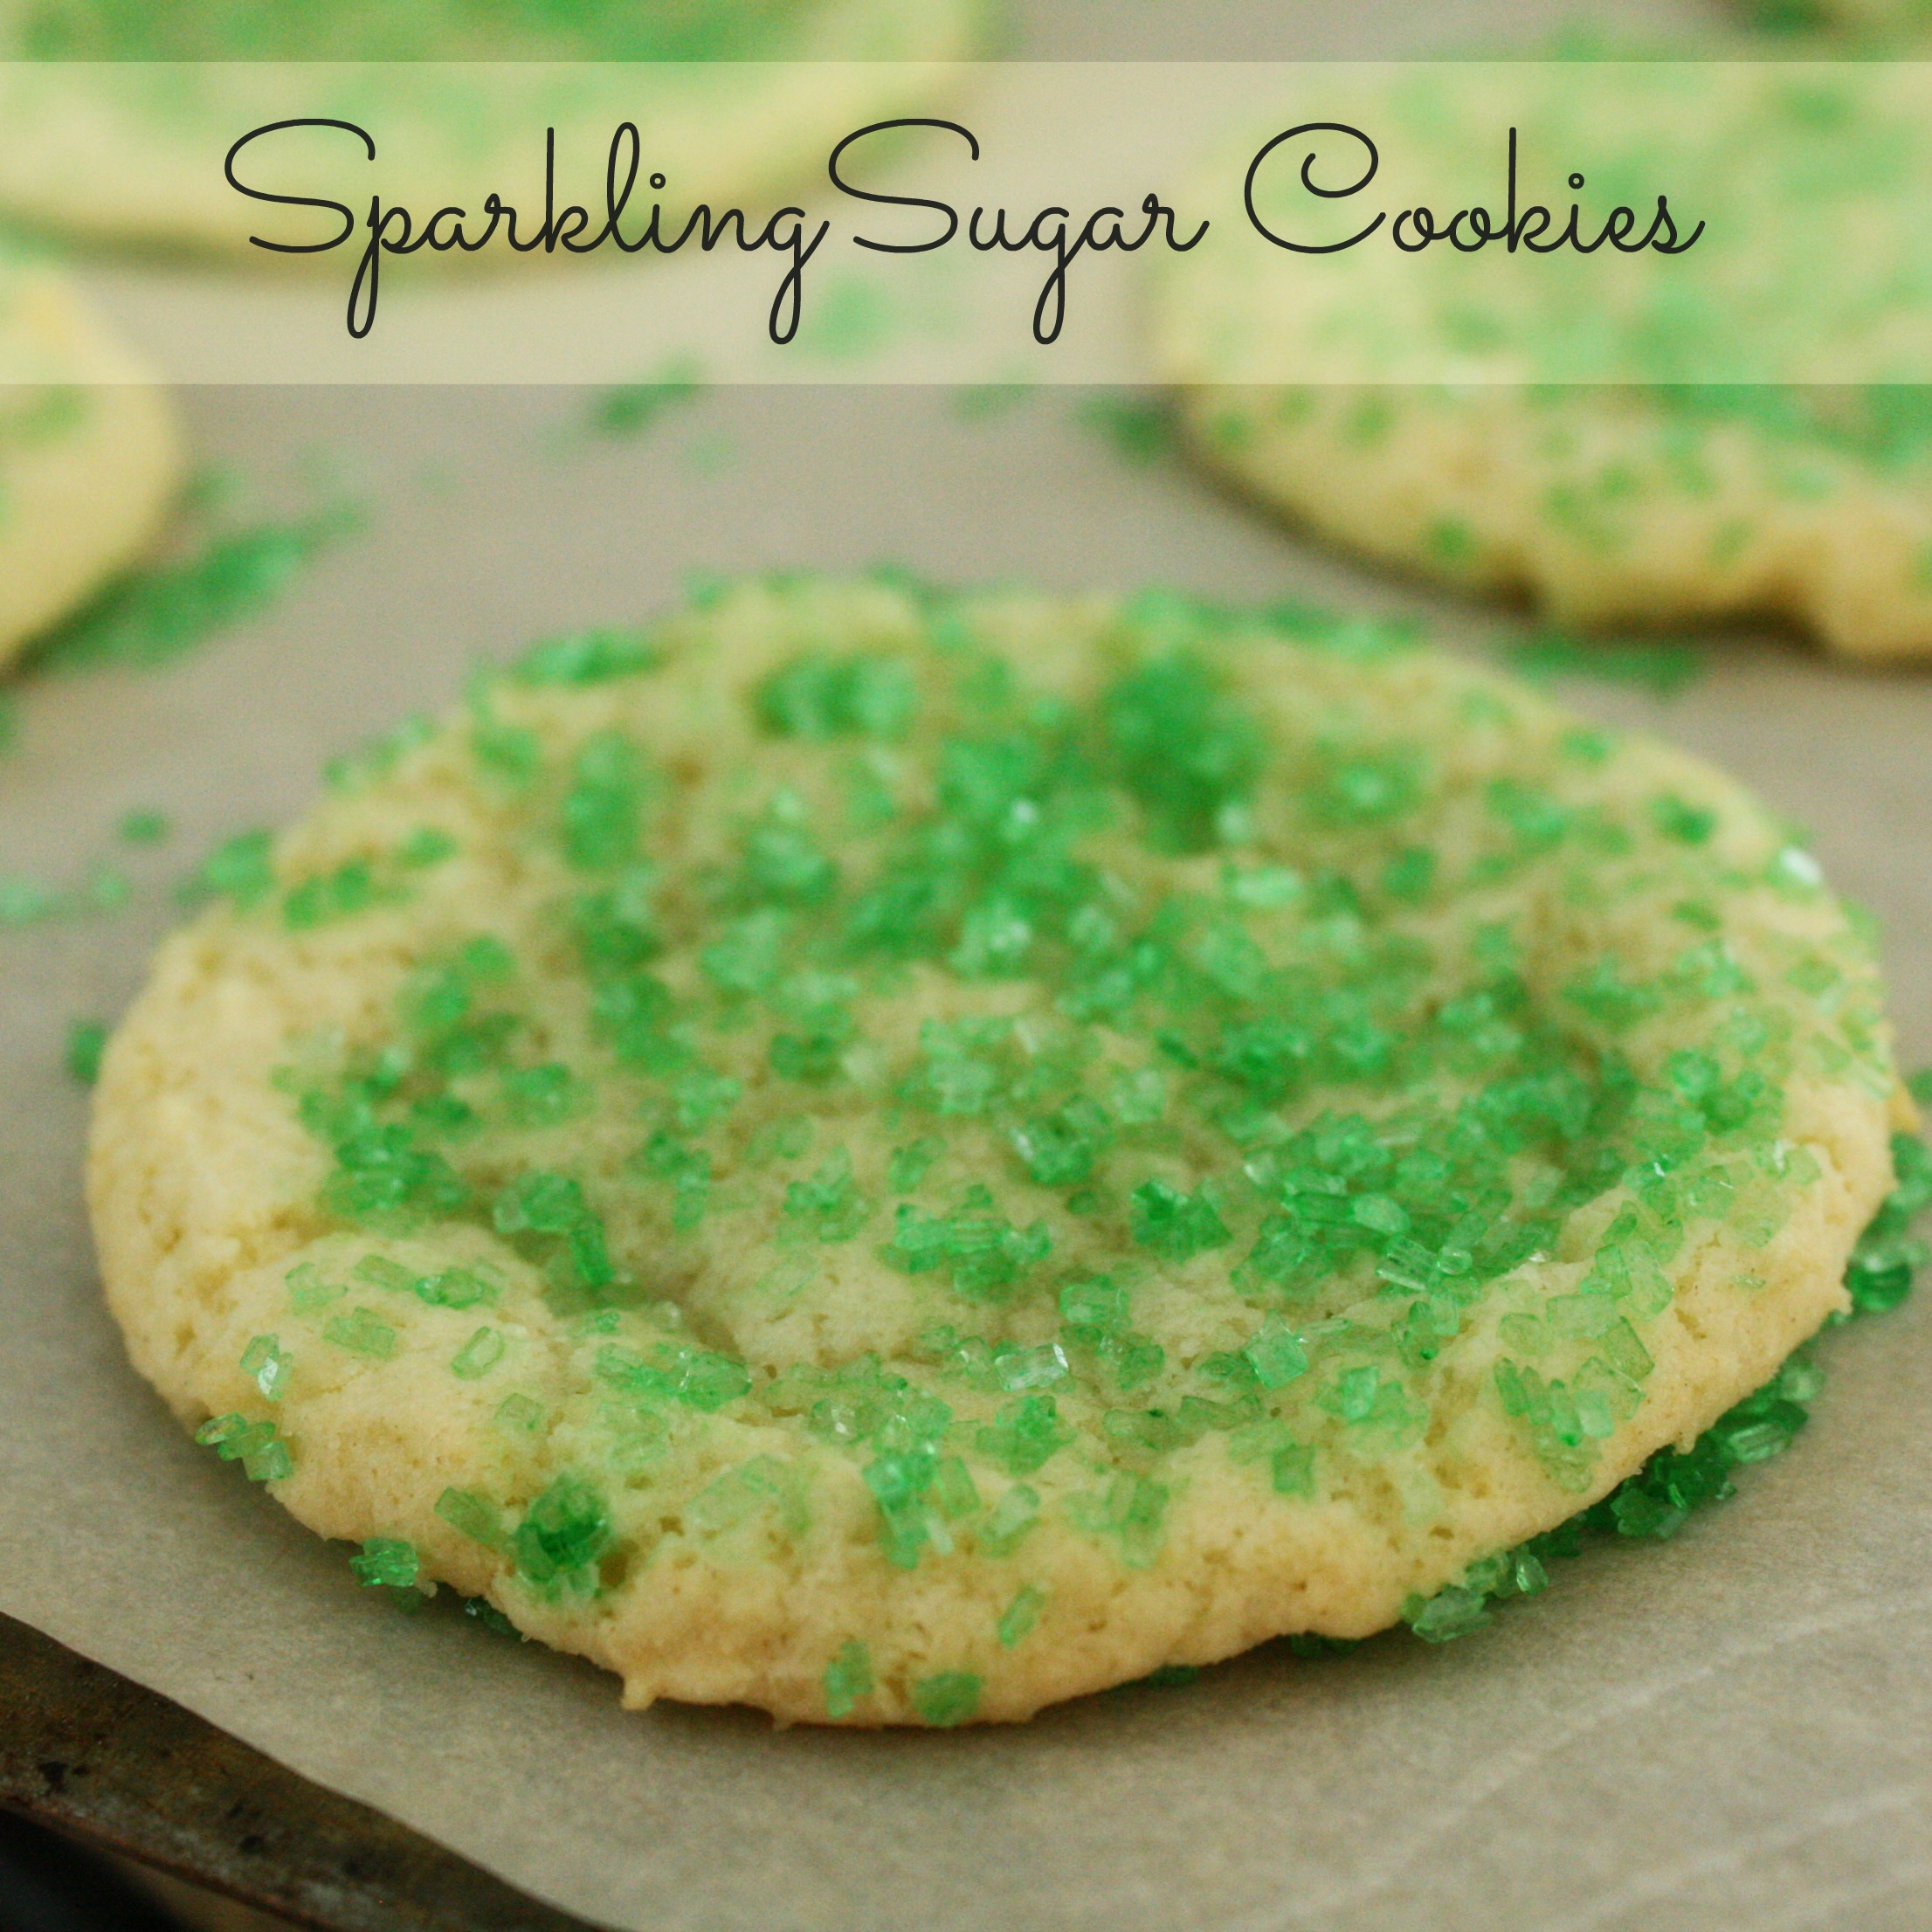 Sparkling chewy sugar cookies recipe From the Family With Love